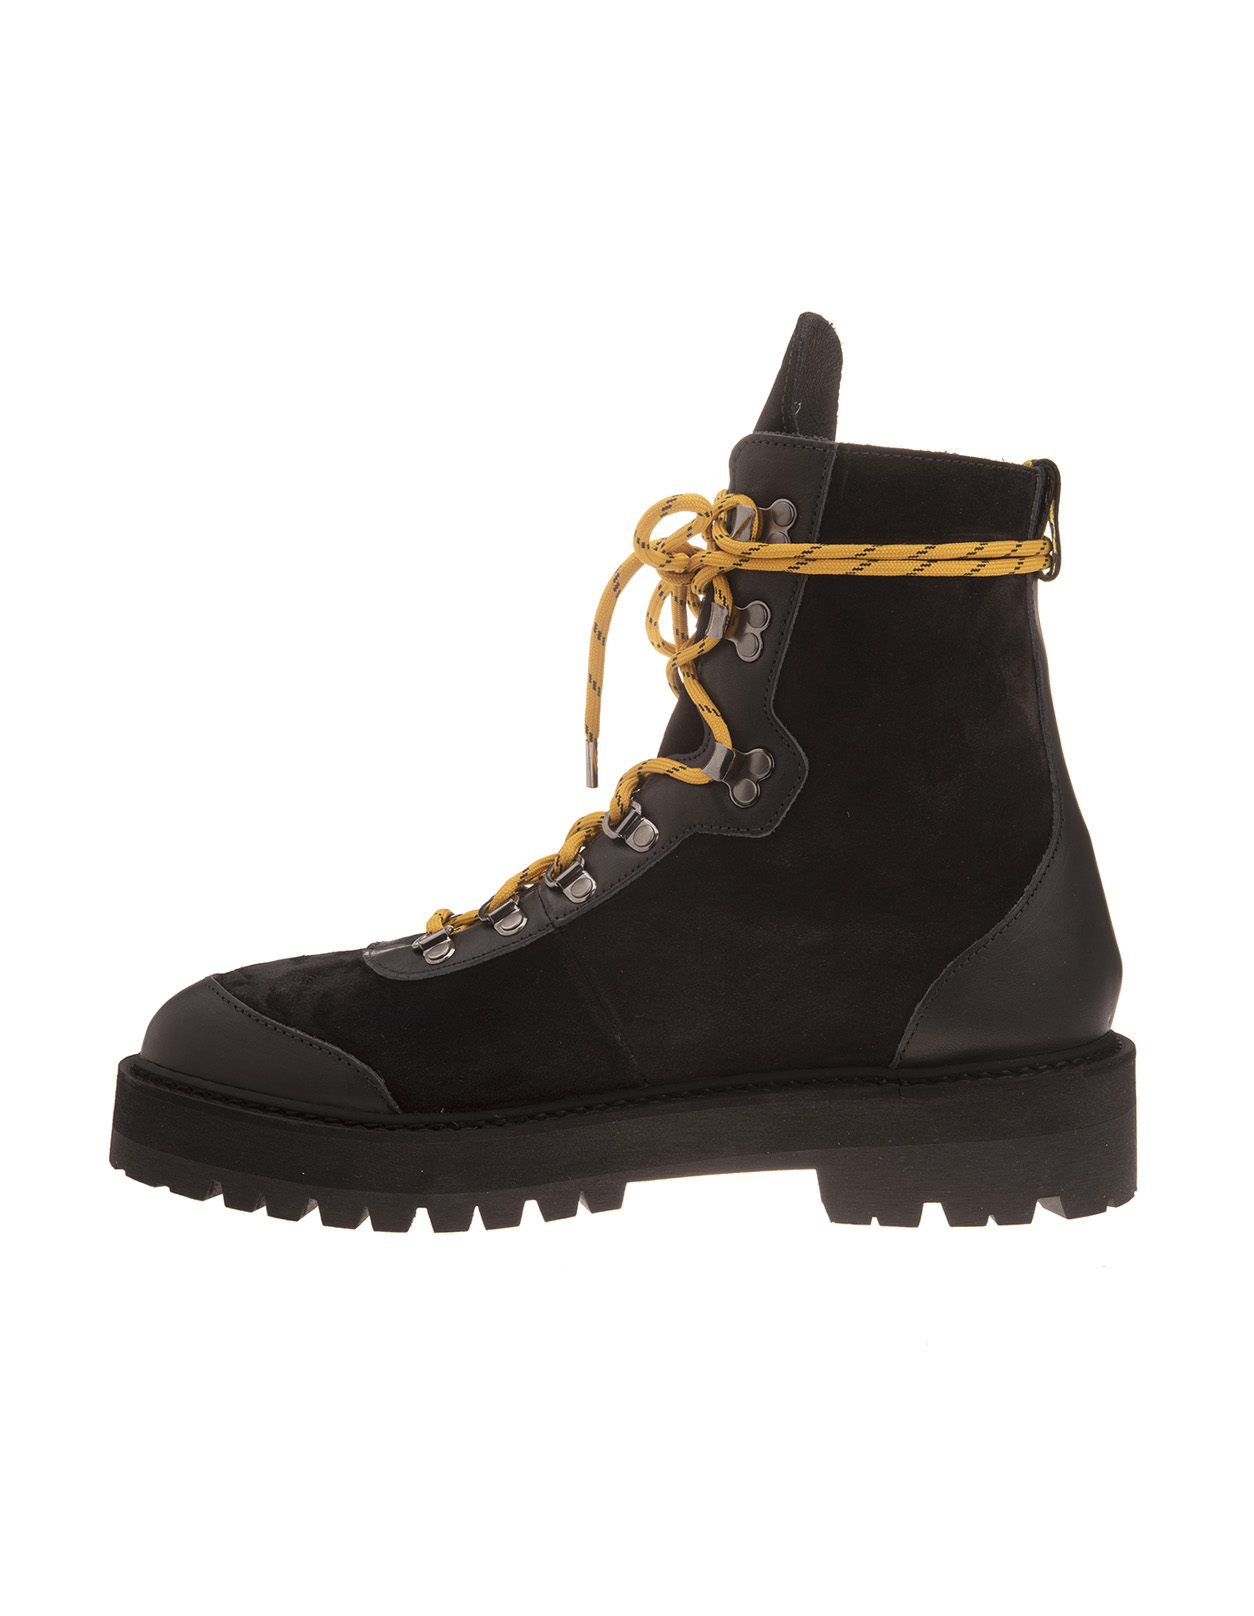 Black Hiking Boots With Yellow Laces